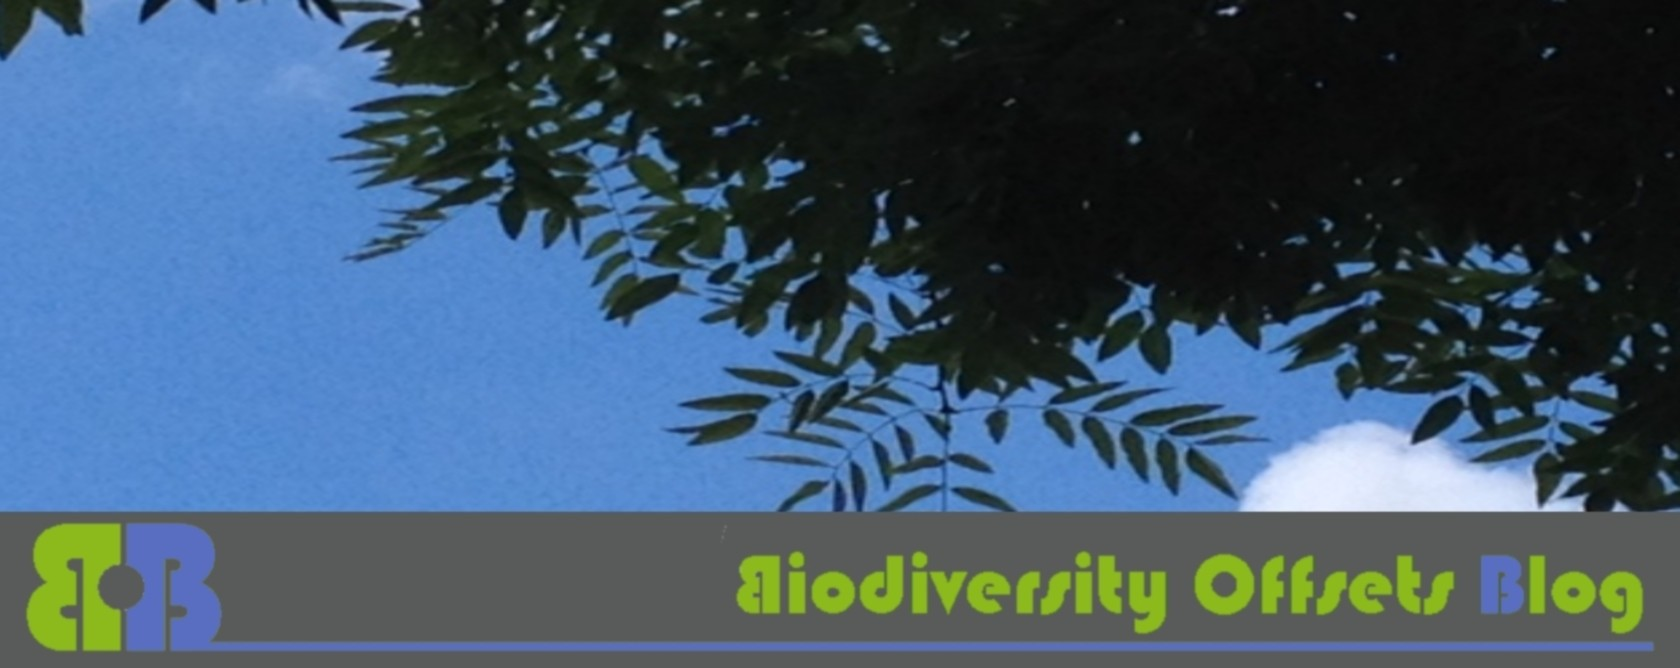 Biodiversity Offsets Blog